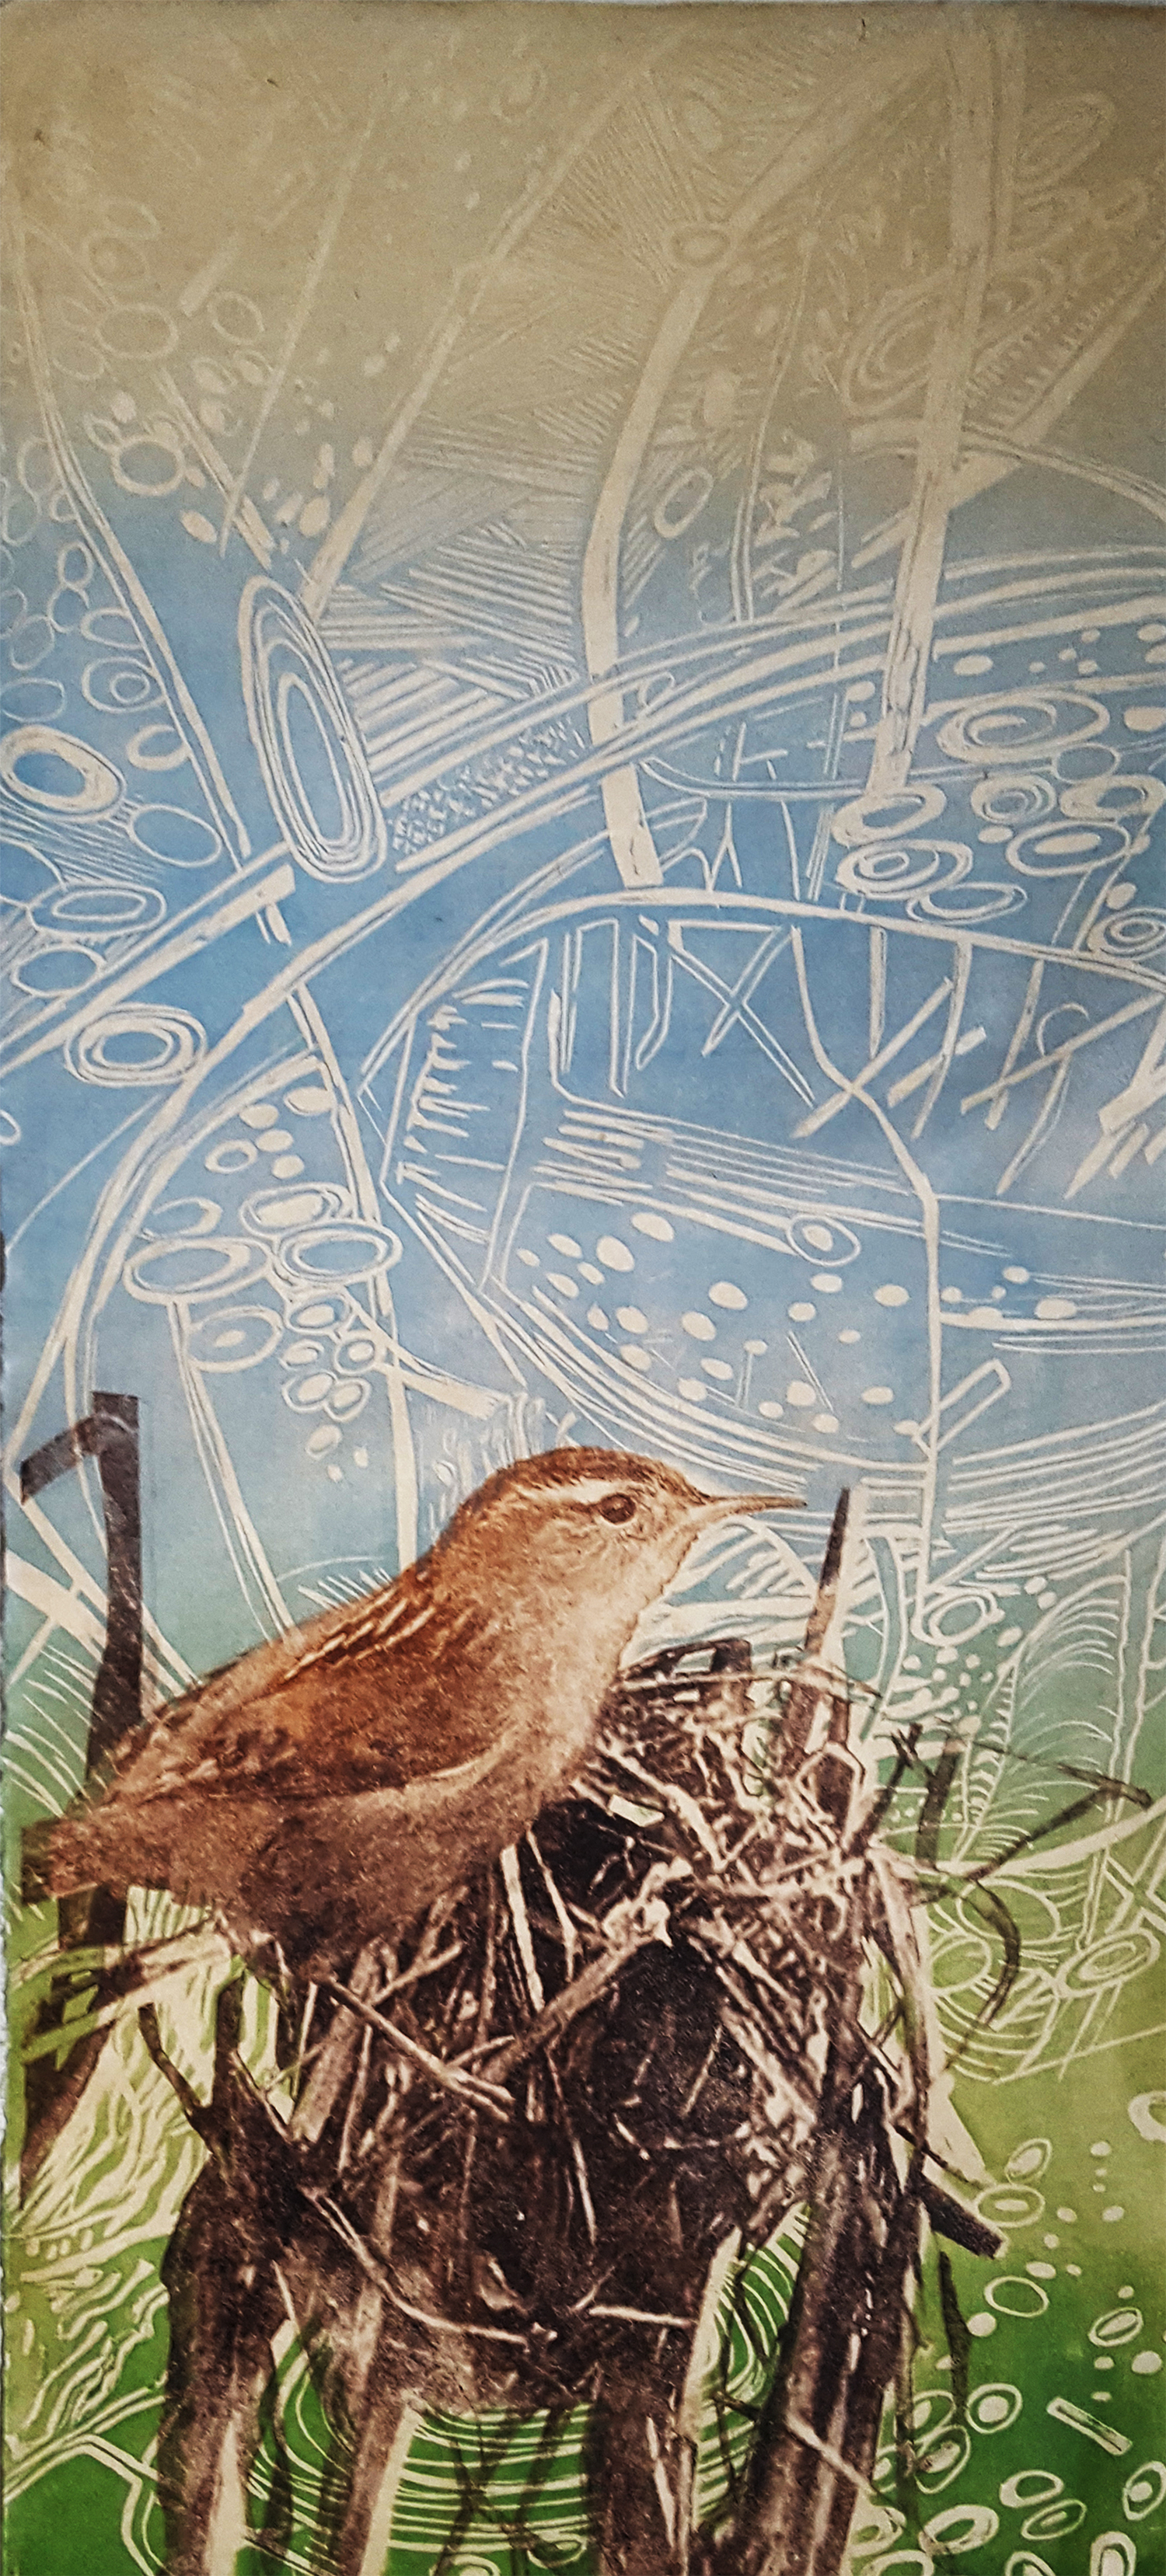 Marsh Wren, 10 ¼ x 23 ¾ inches, Woodcut, Paper Lithography, Screenprint, Archival Inkjet, Japanese paper, 2018